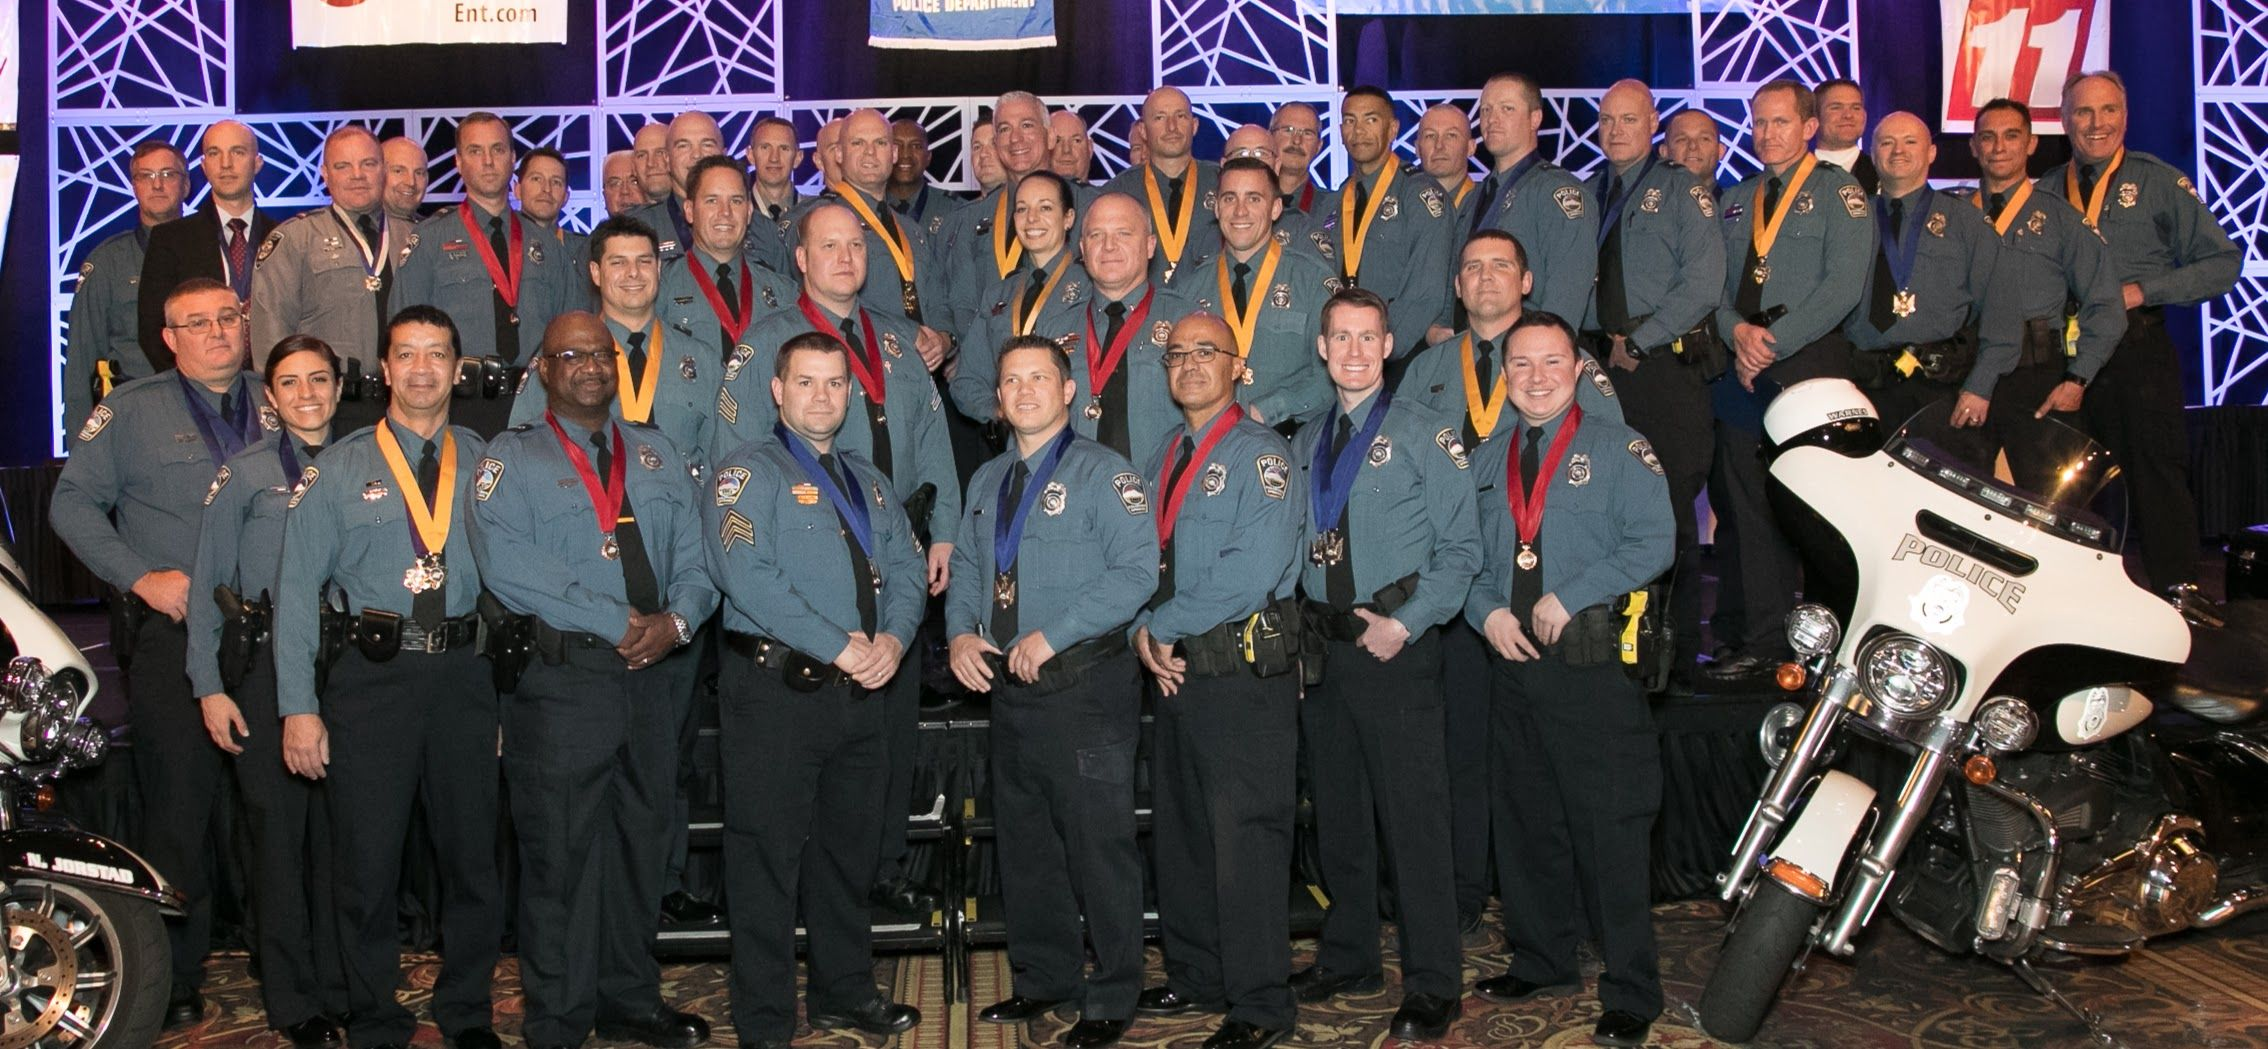 Medal recipients Event, Colorado springs, Concert